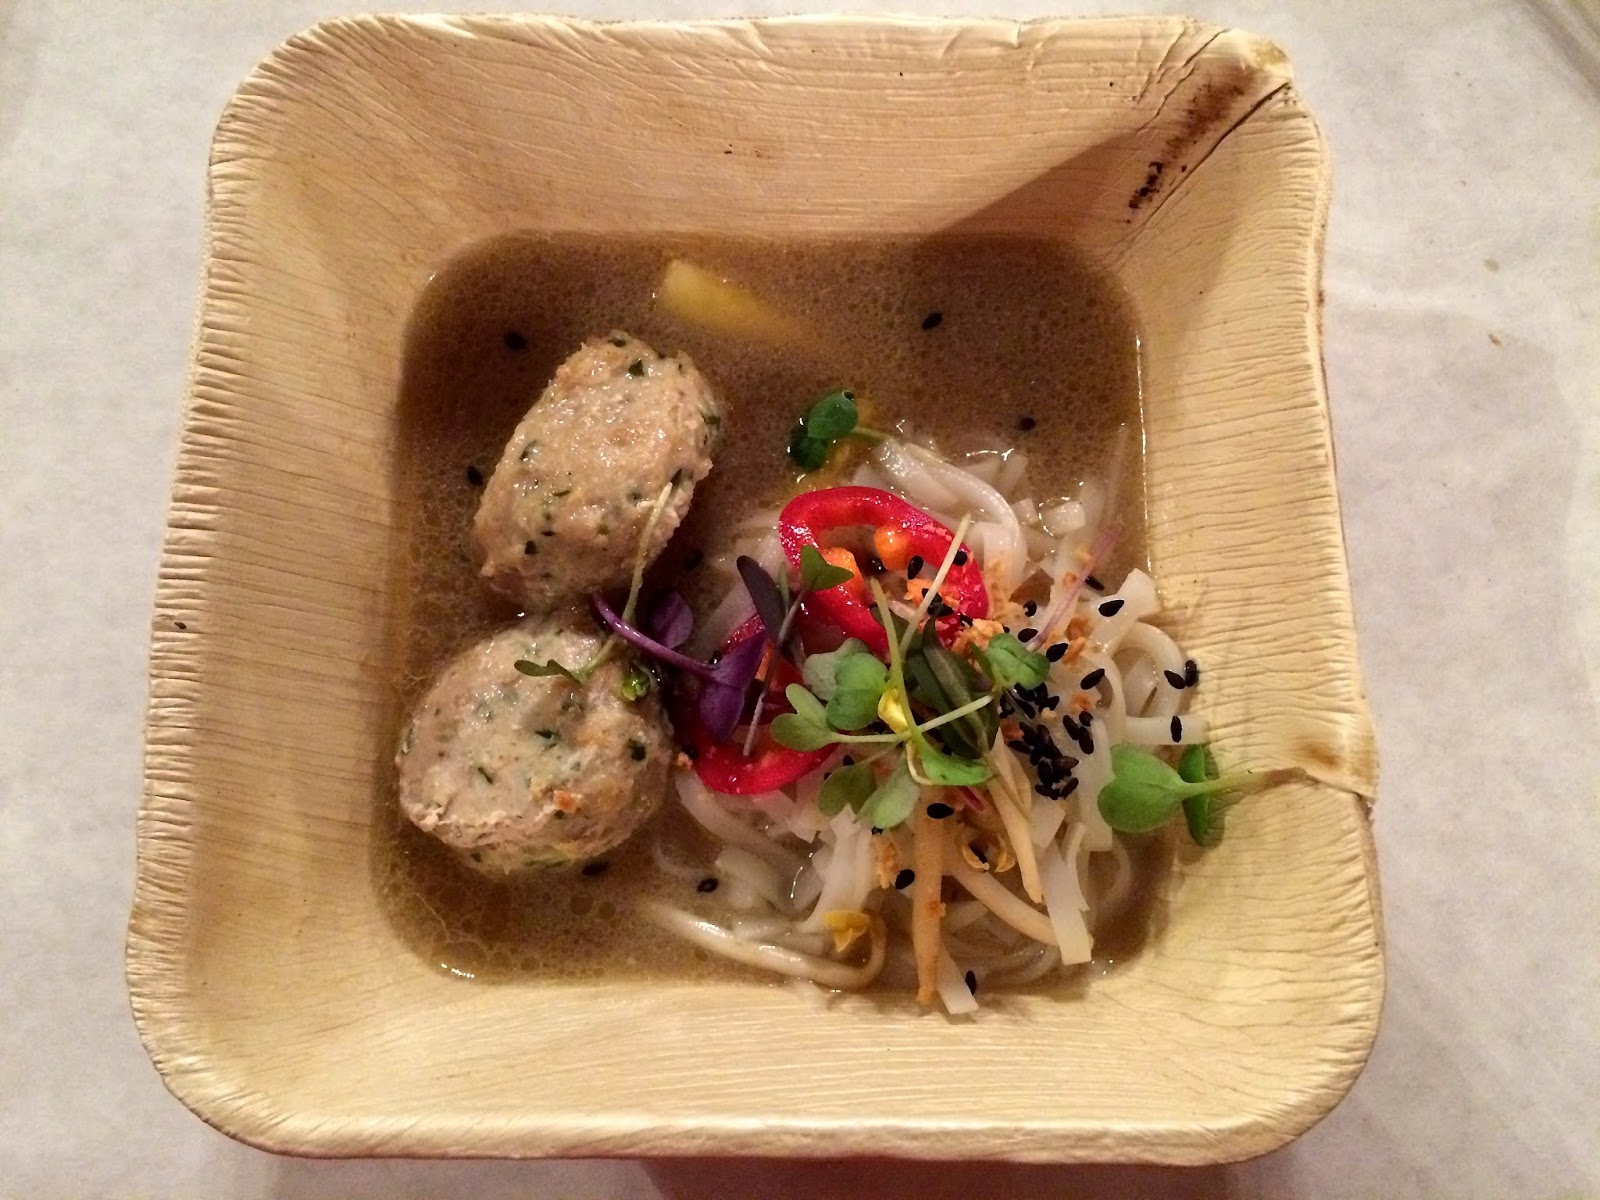 Third Course: Tamarind Stew with Fish Dumplings, Rice Noodles, and Red Chilies